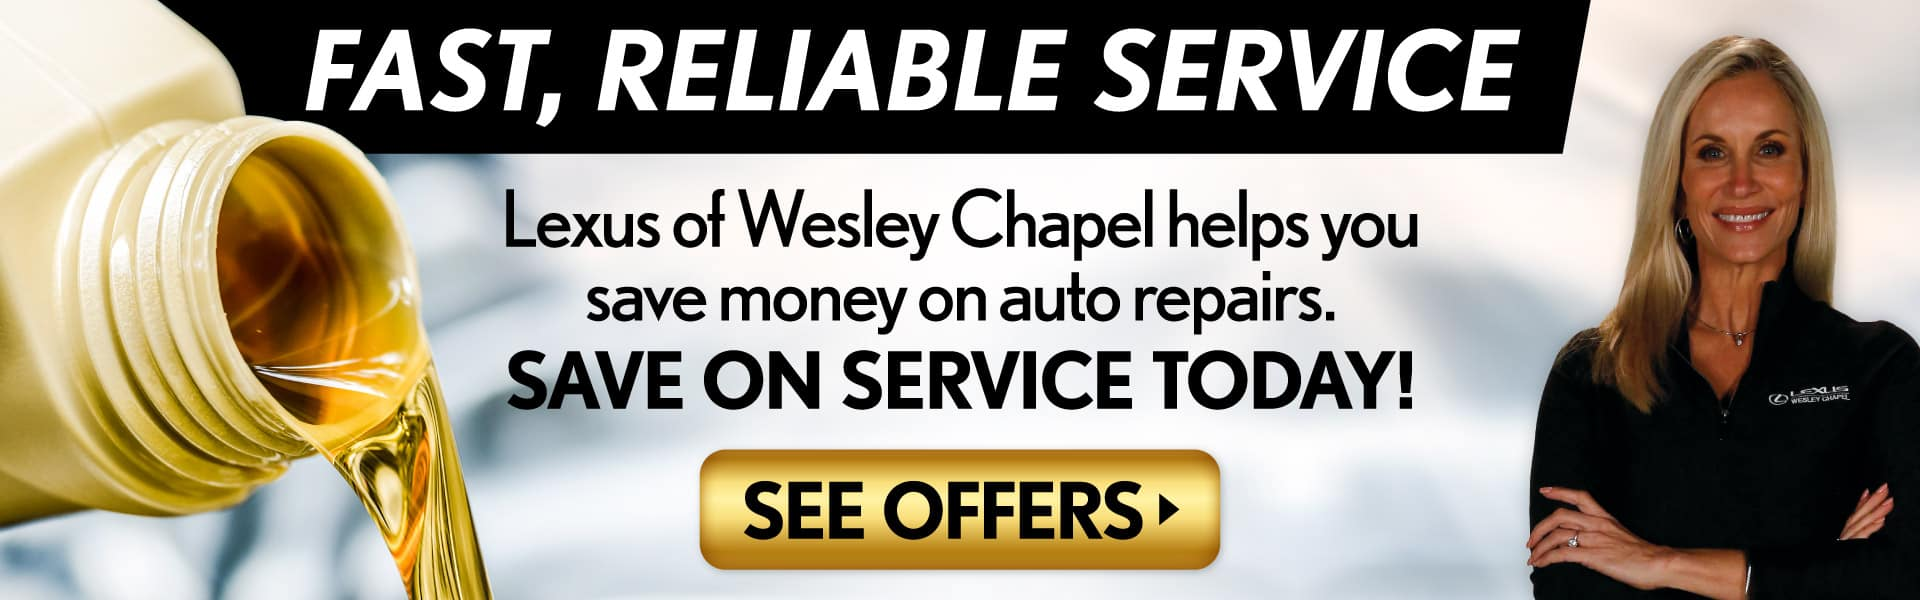 Fast, Reliable Service from Lexus of Wesley Chapel - Click to View Service Offers and Save Today!